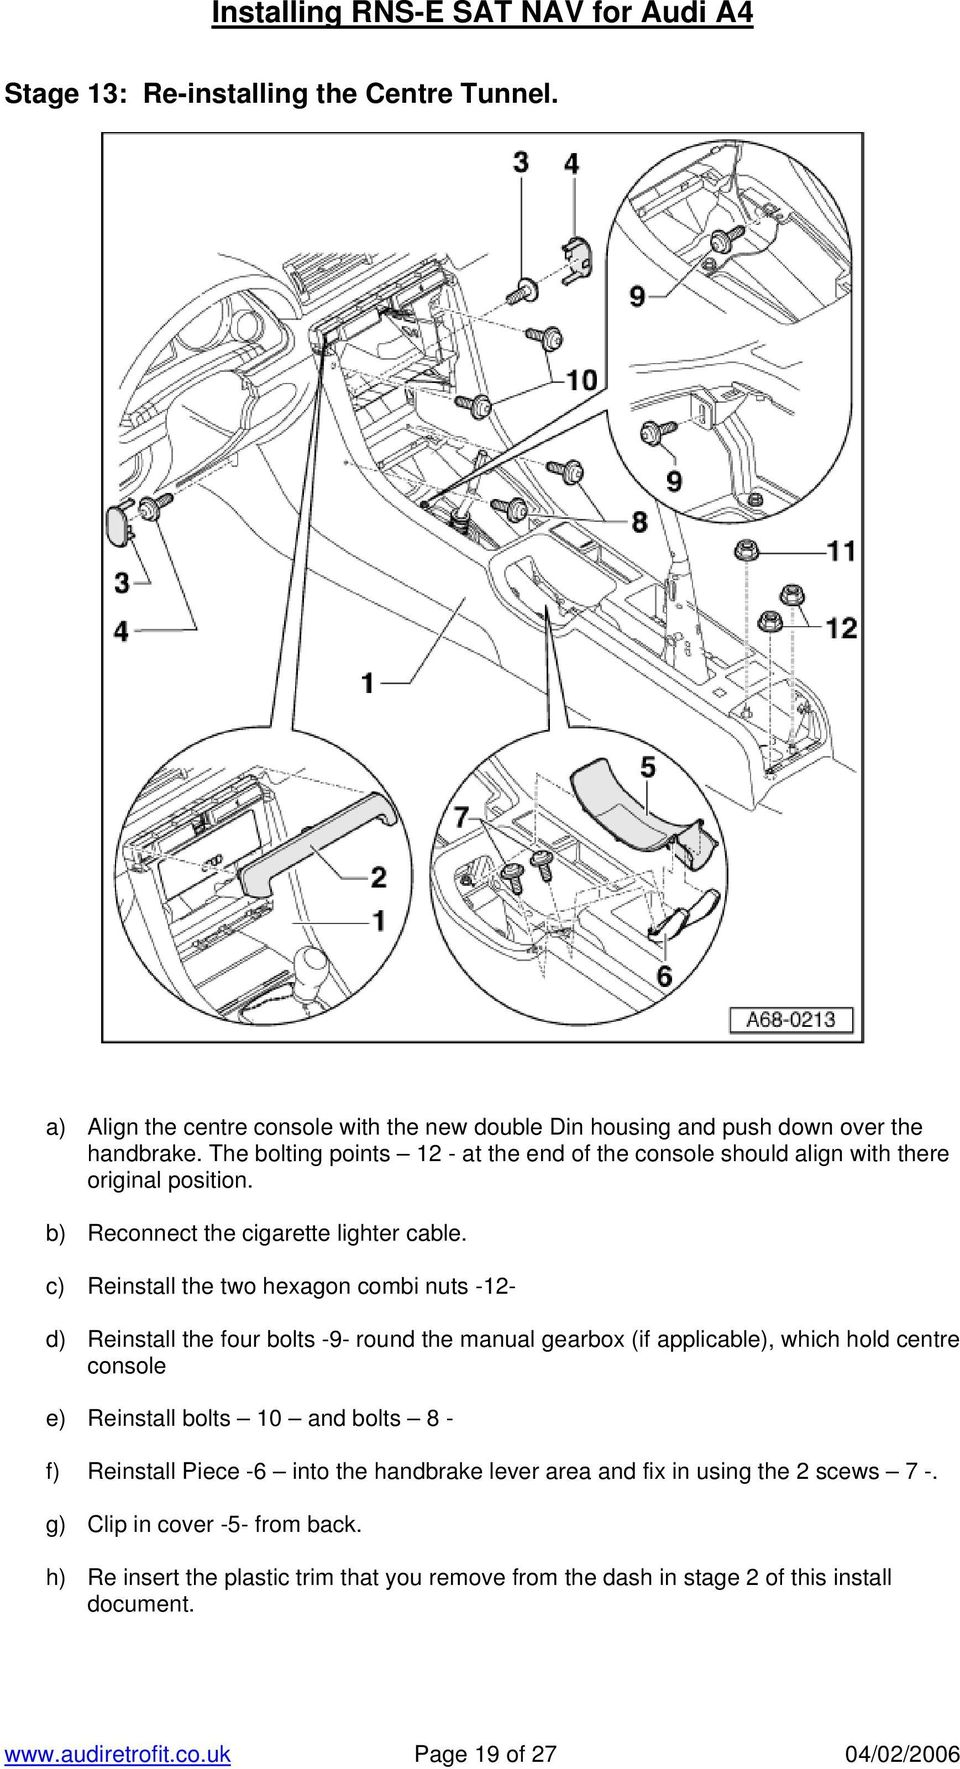 c) Reinstall the two hexagon combi nuts -12- d) Reinstall the four bolts -9- round the manual gearbox (if applicable), which hold centre console e) Reinstall bolts 10 and bolts 8